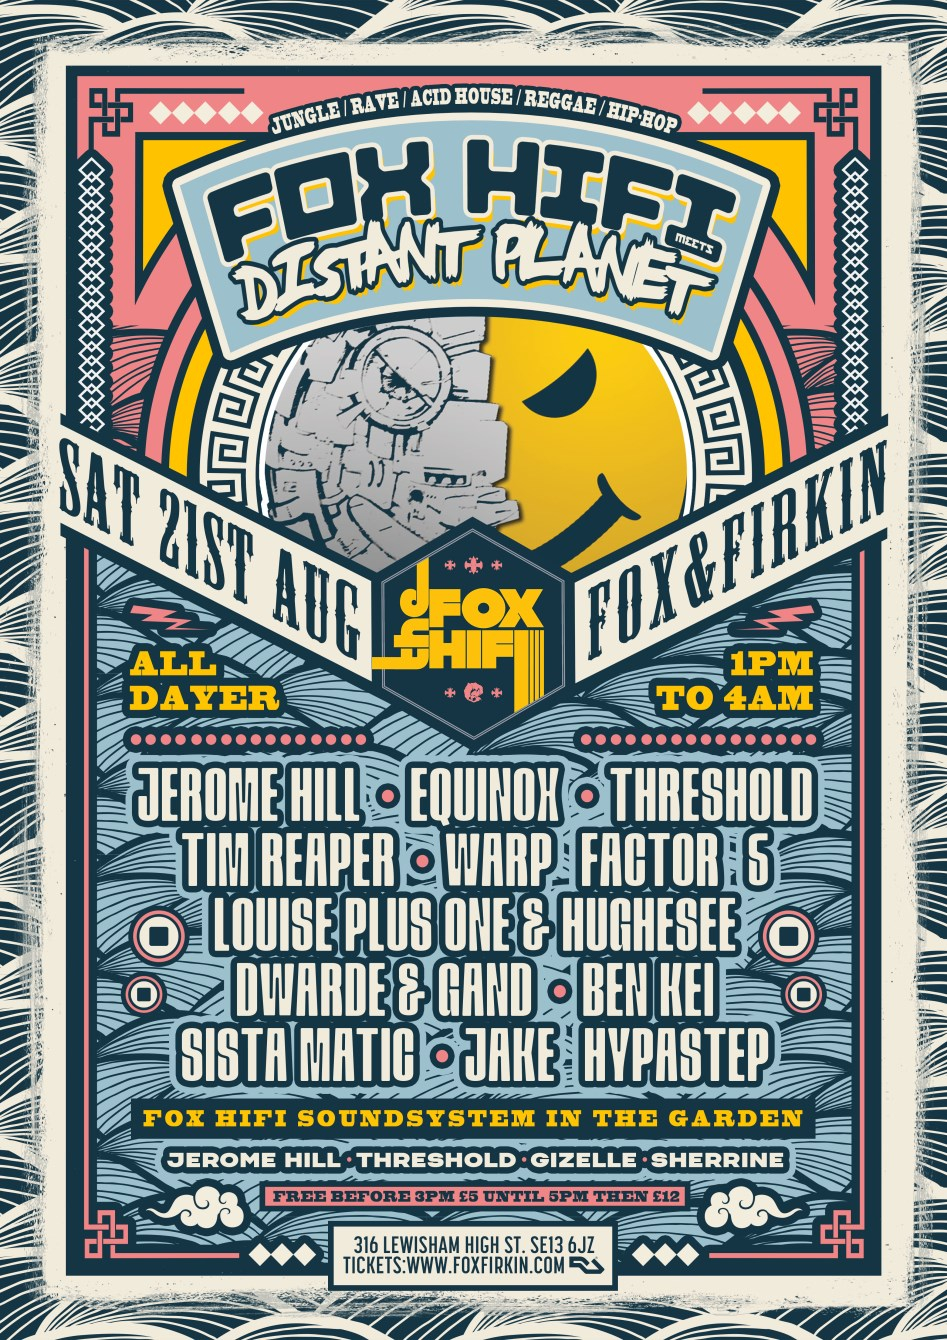 Distant Planet vs Fox Hifi - All Dayer - Flyer front